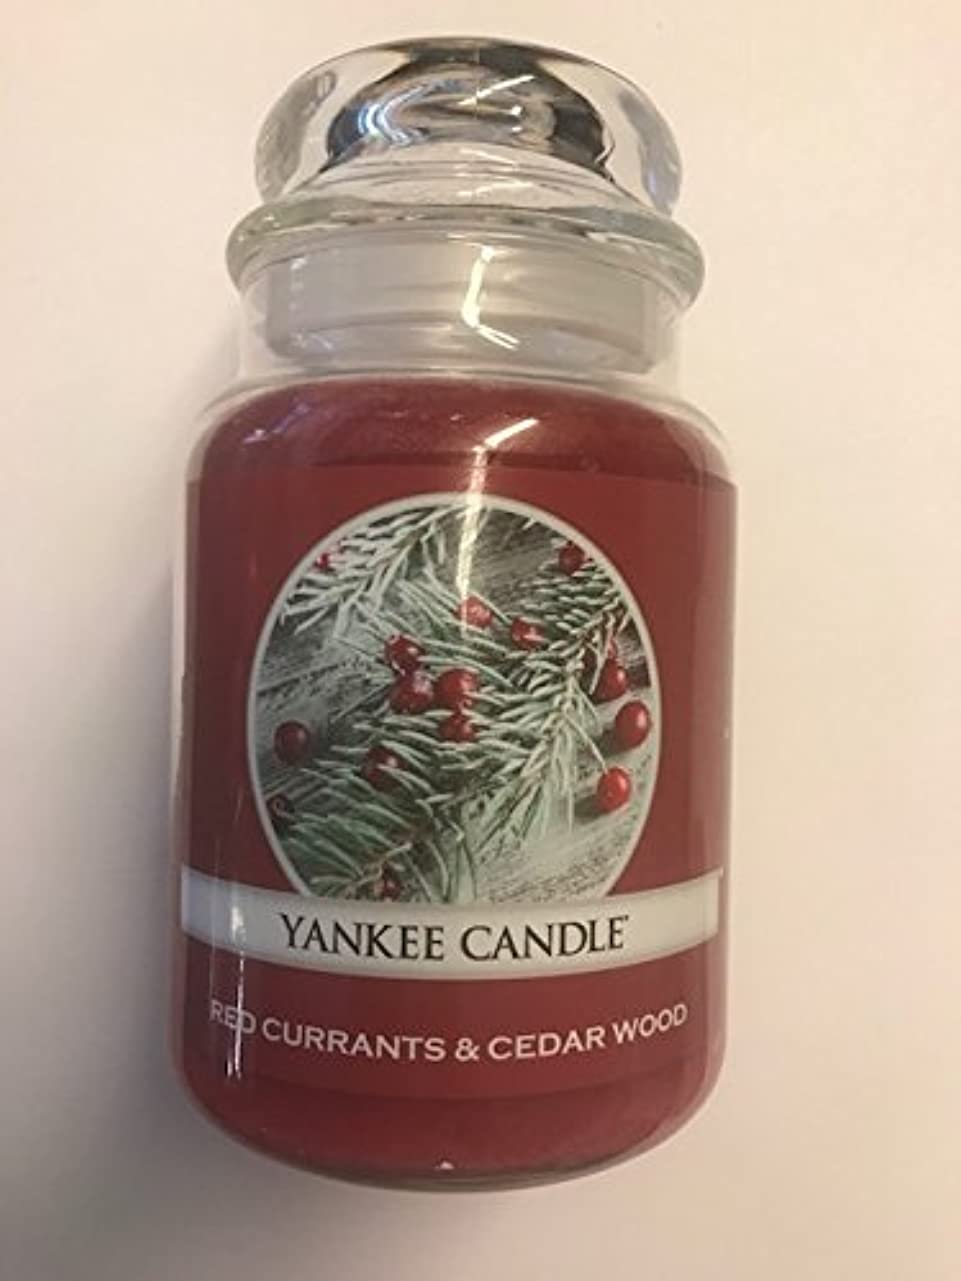 Red Currants & Cedar Wood Yankee Candle / 22 0z